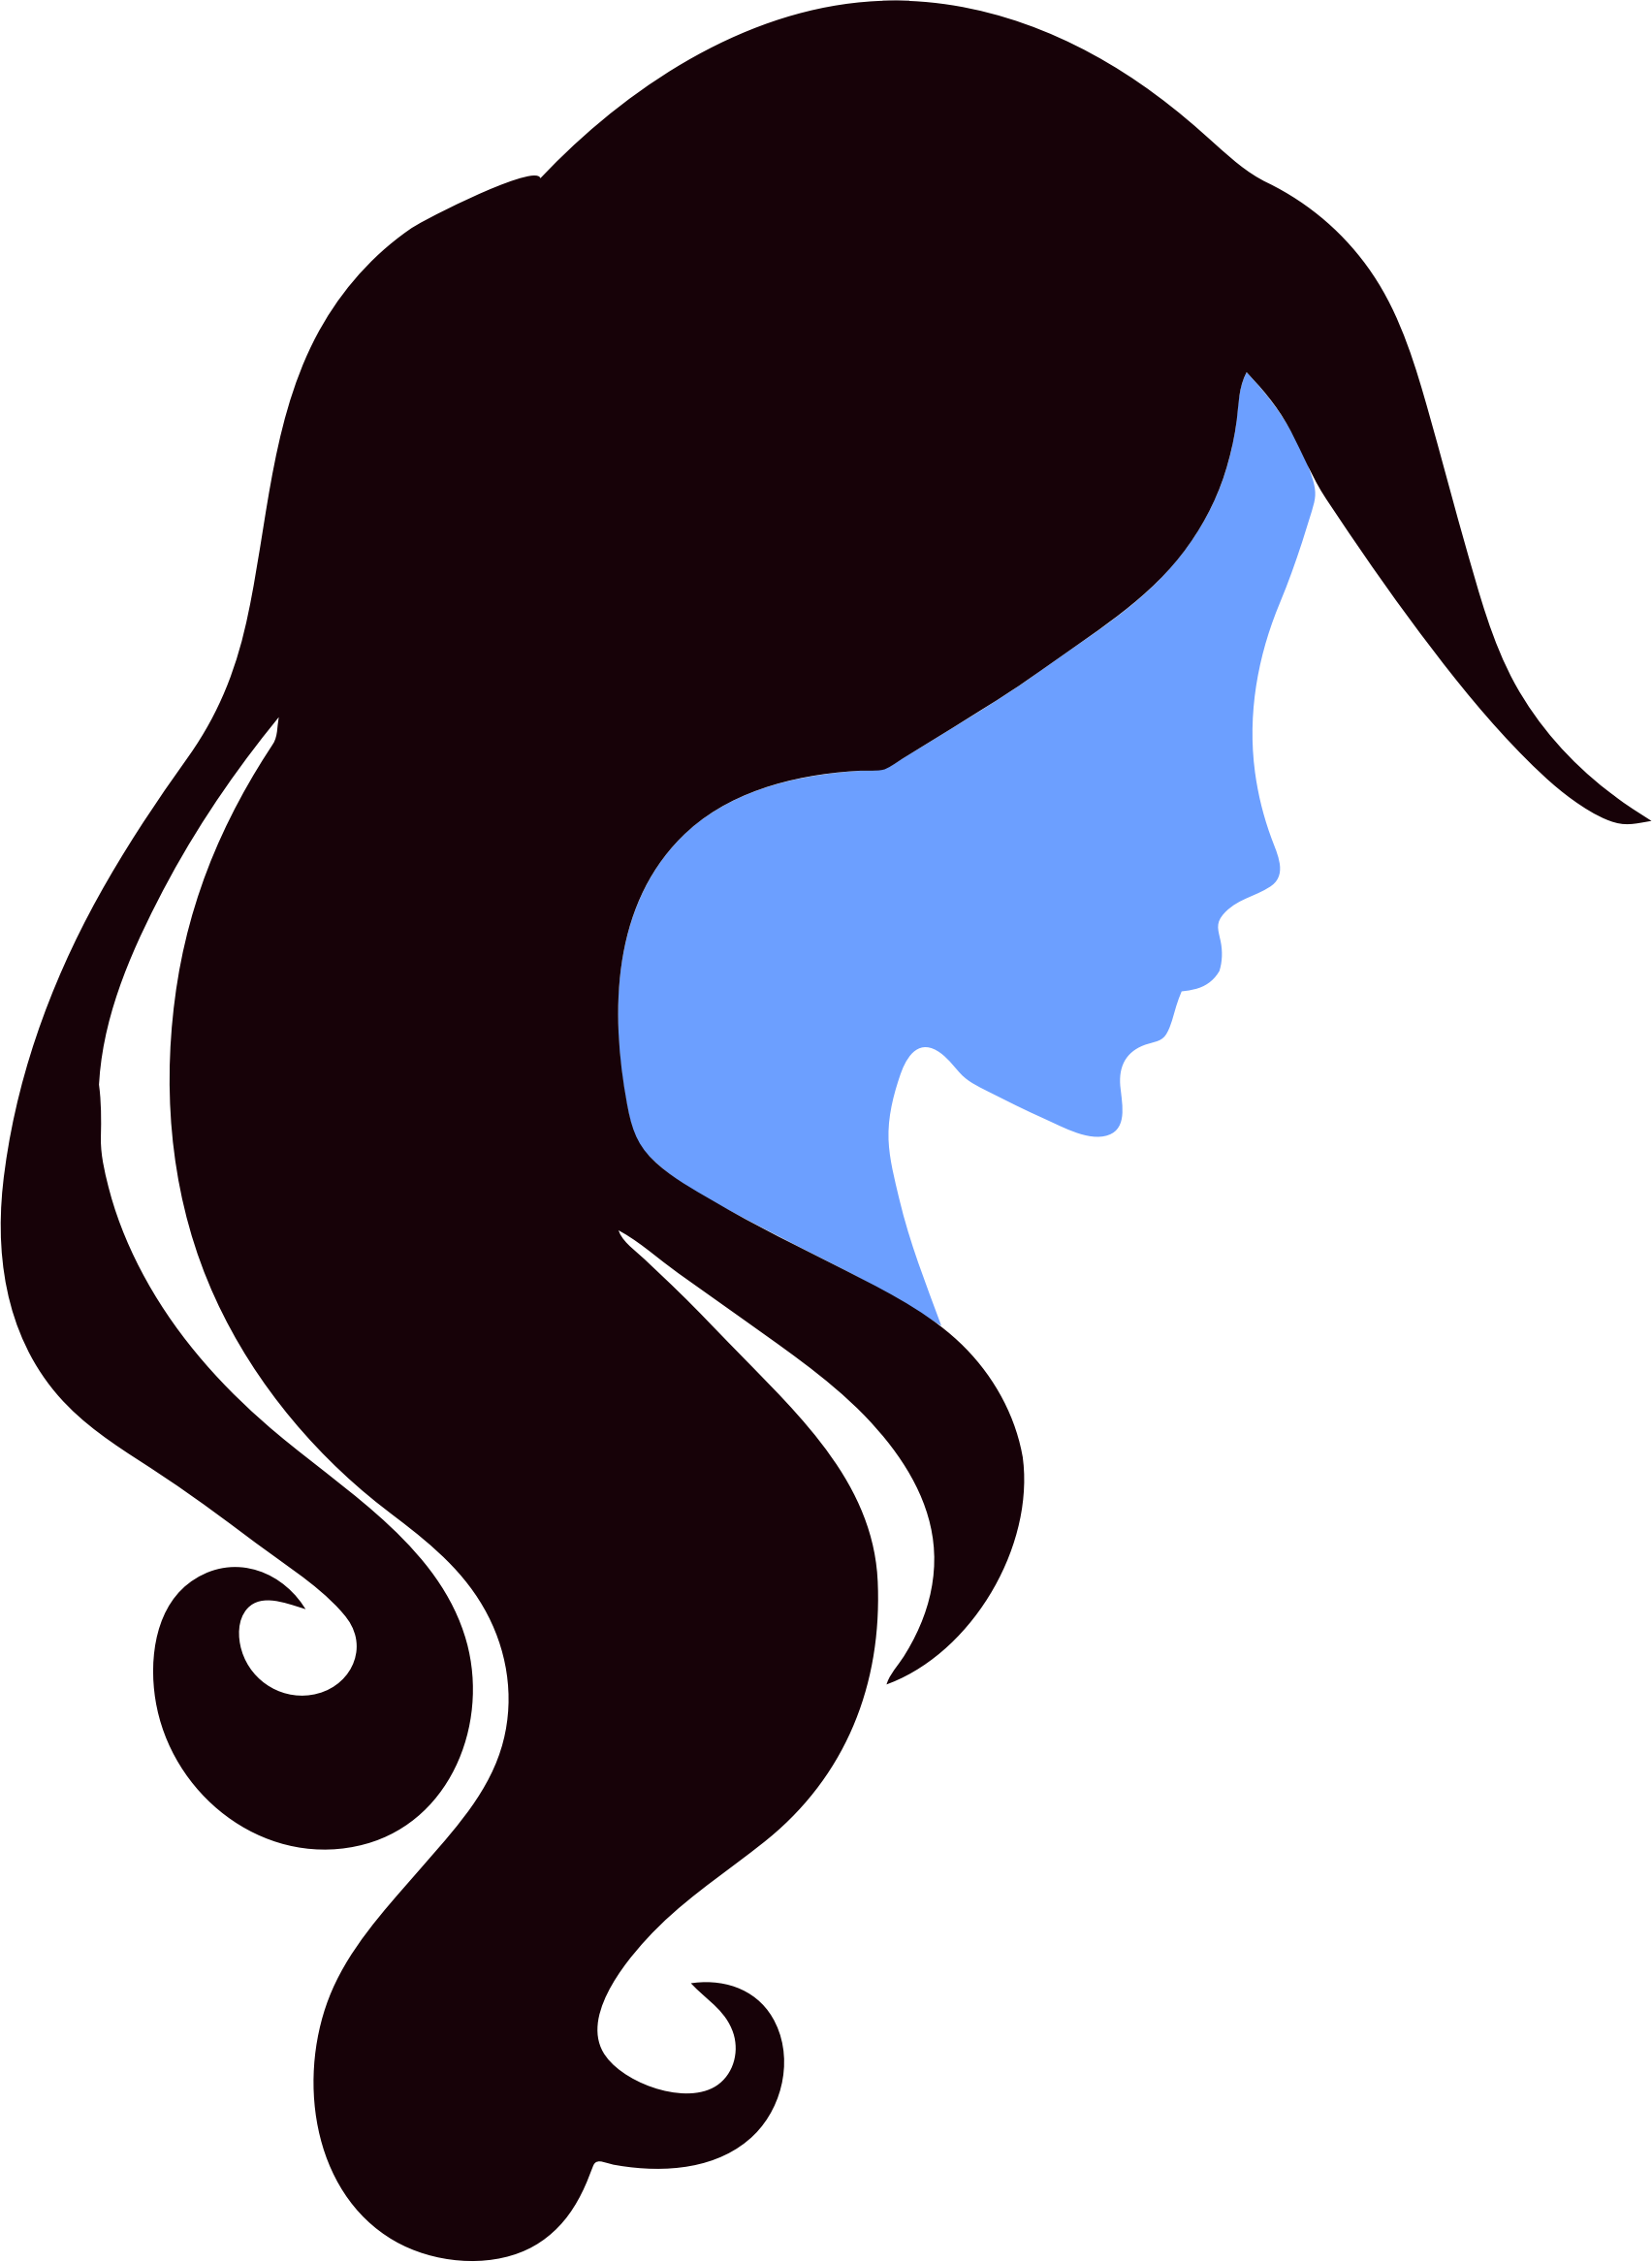 Woman Profile Silhouette Clipart Free Download Best